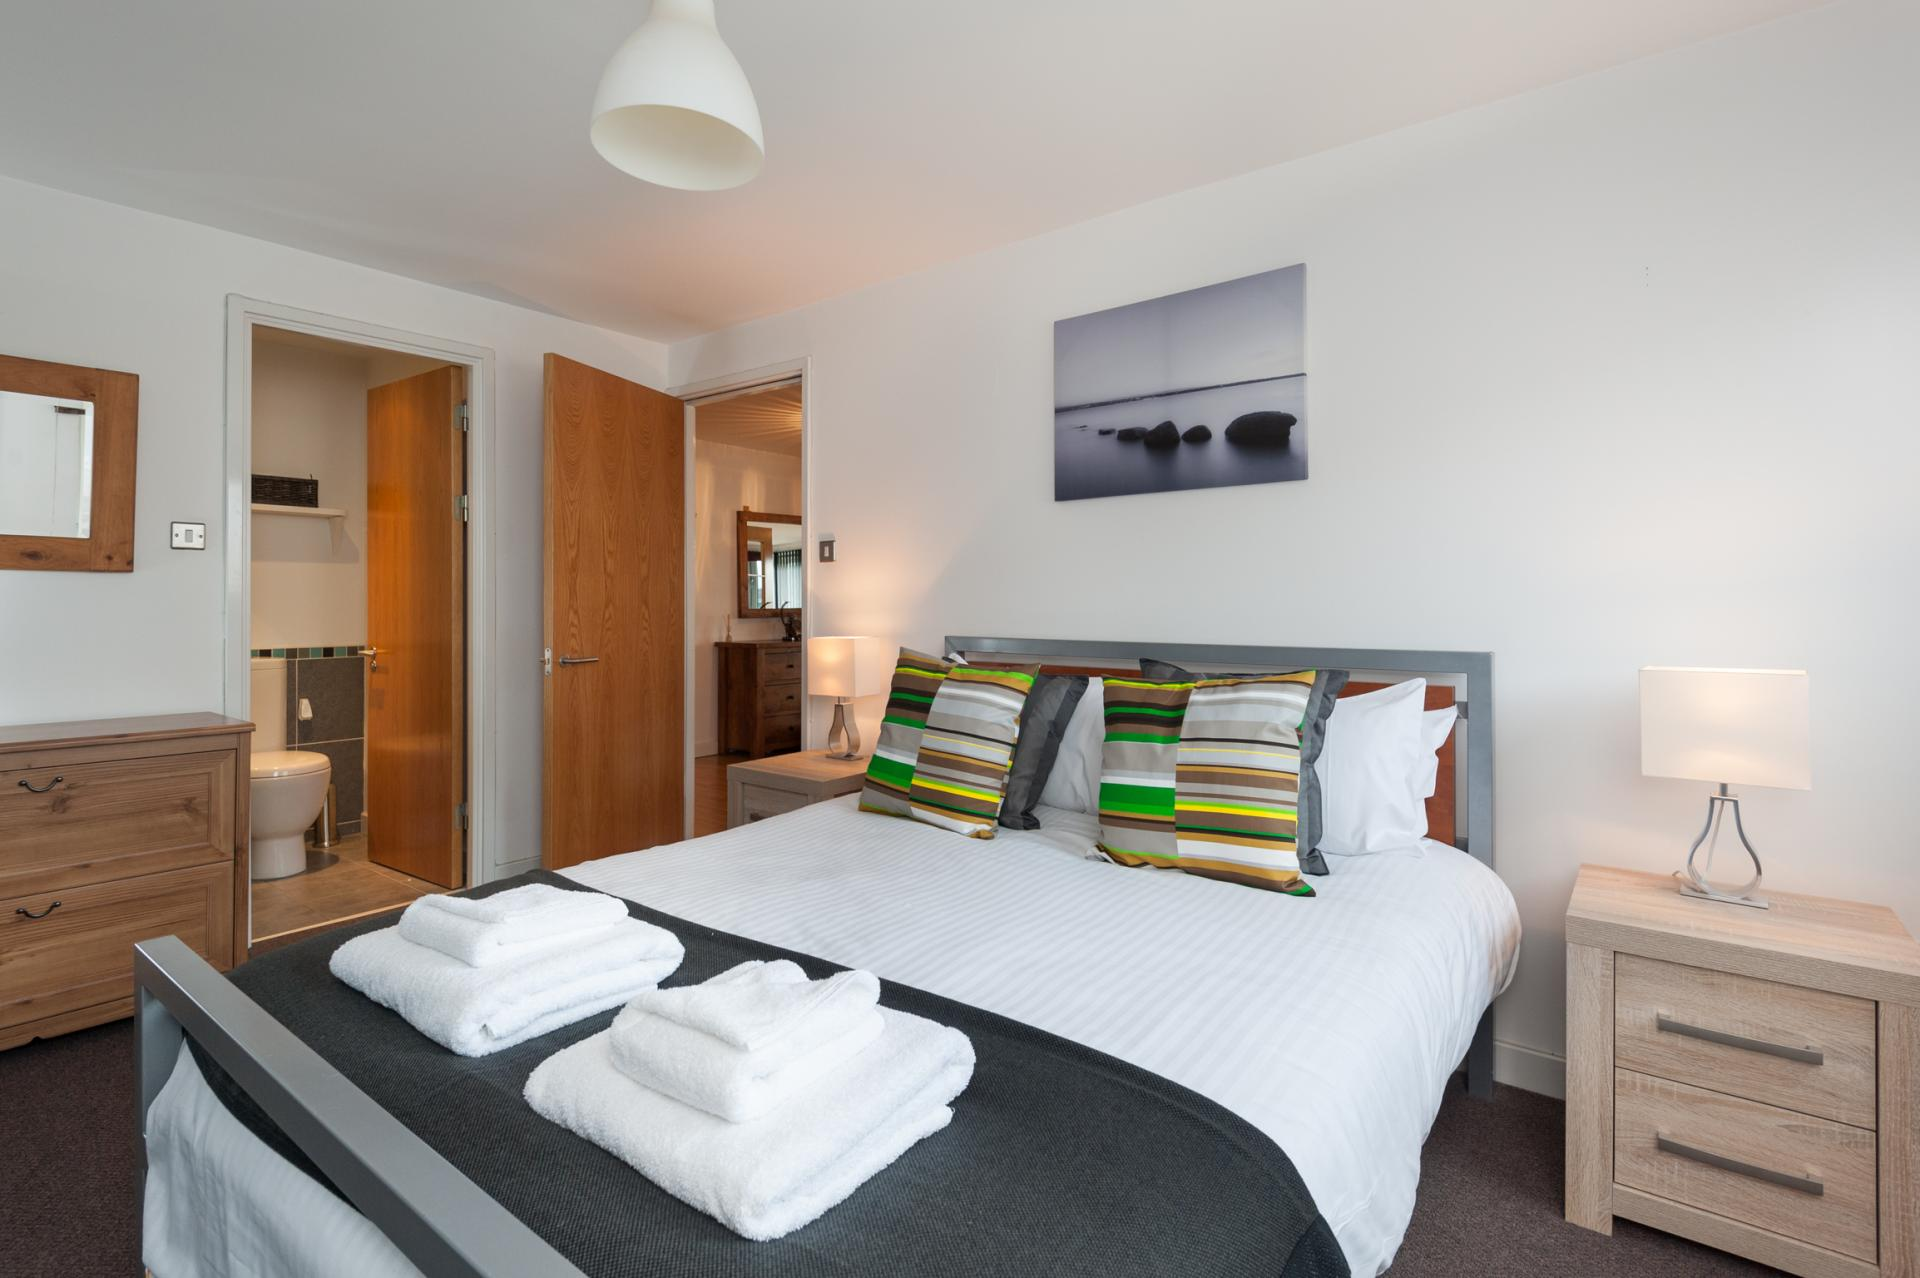 Bed 2 at Metropole Apartment